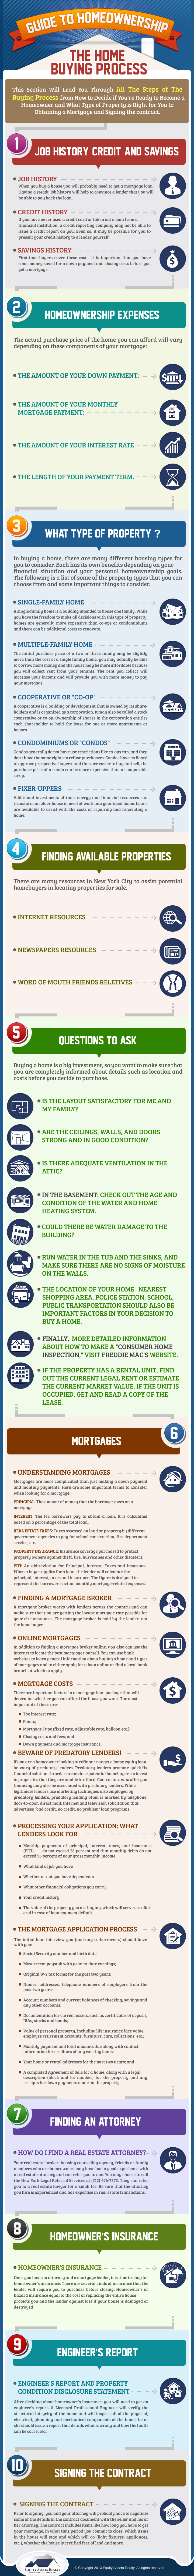 Guide to Homeownership